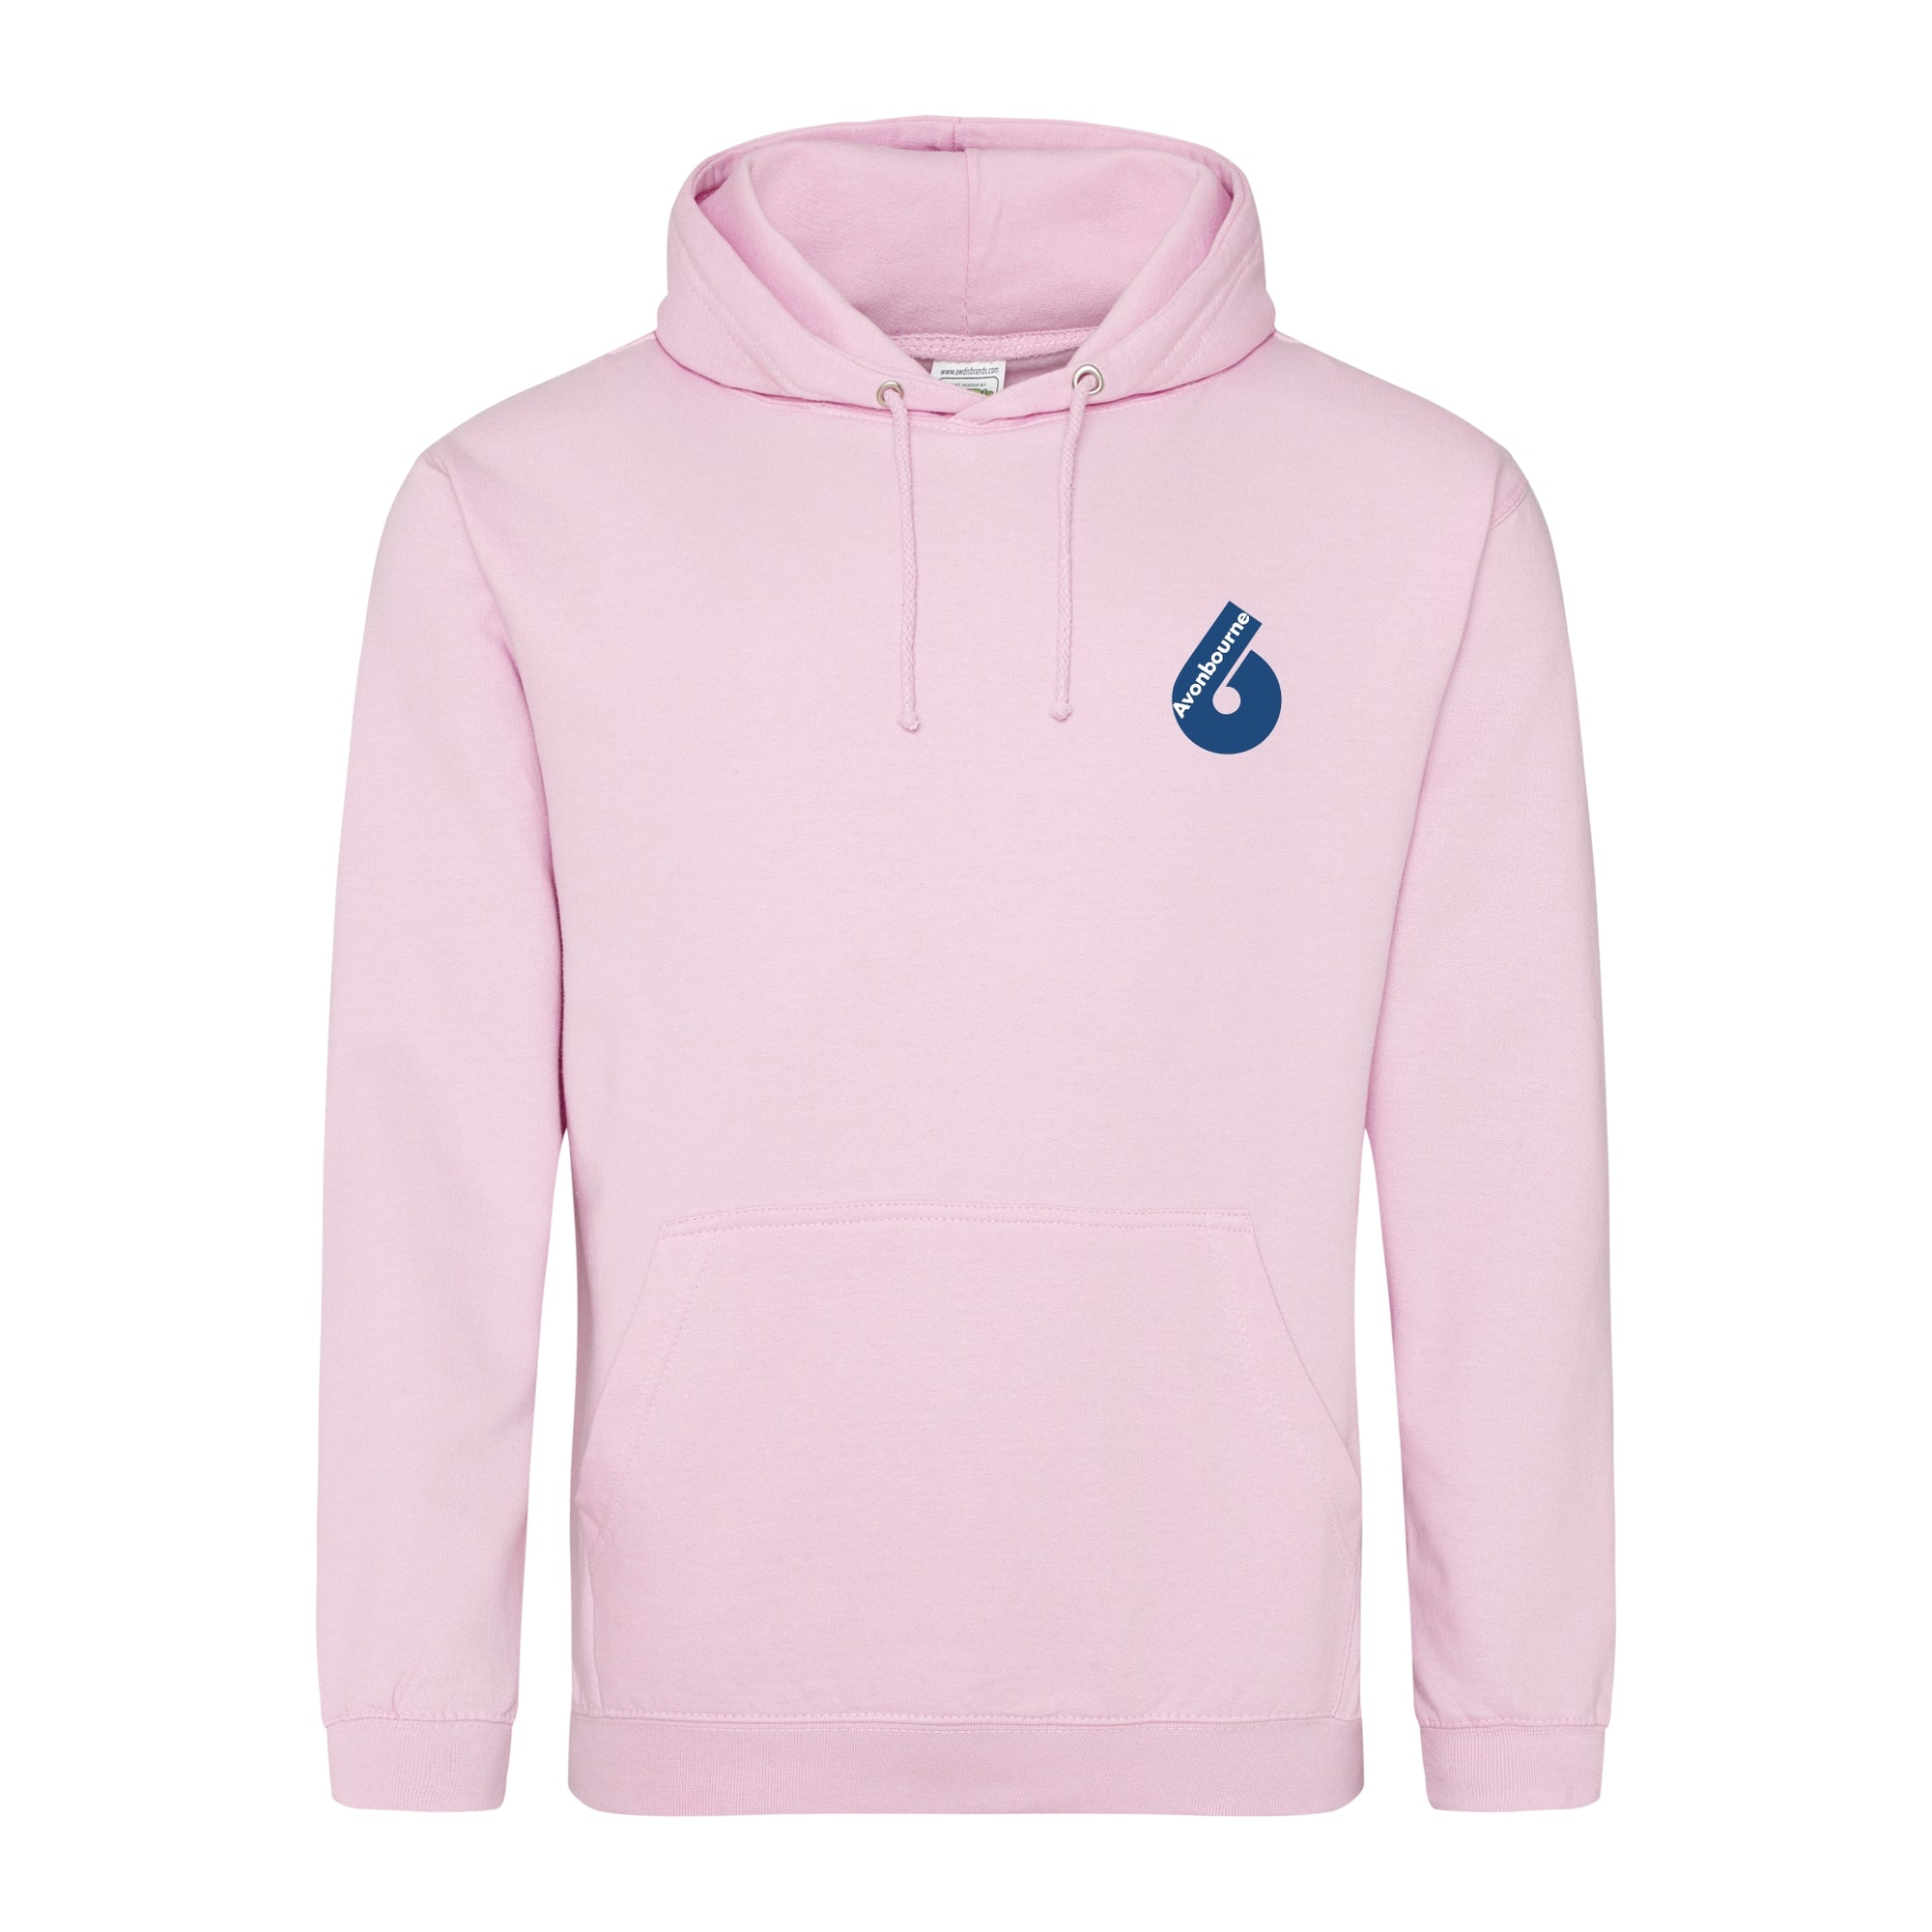 Avonbourne 6th form hoody in baby pink with sixth form logo on left chest